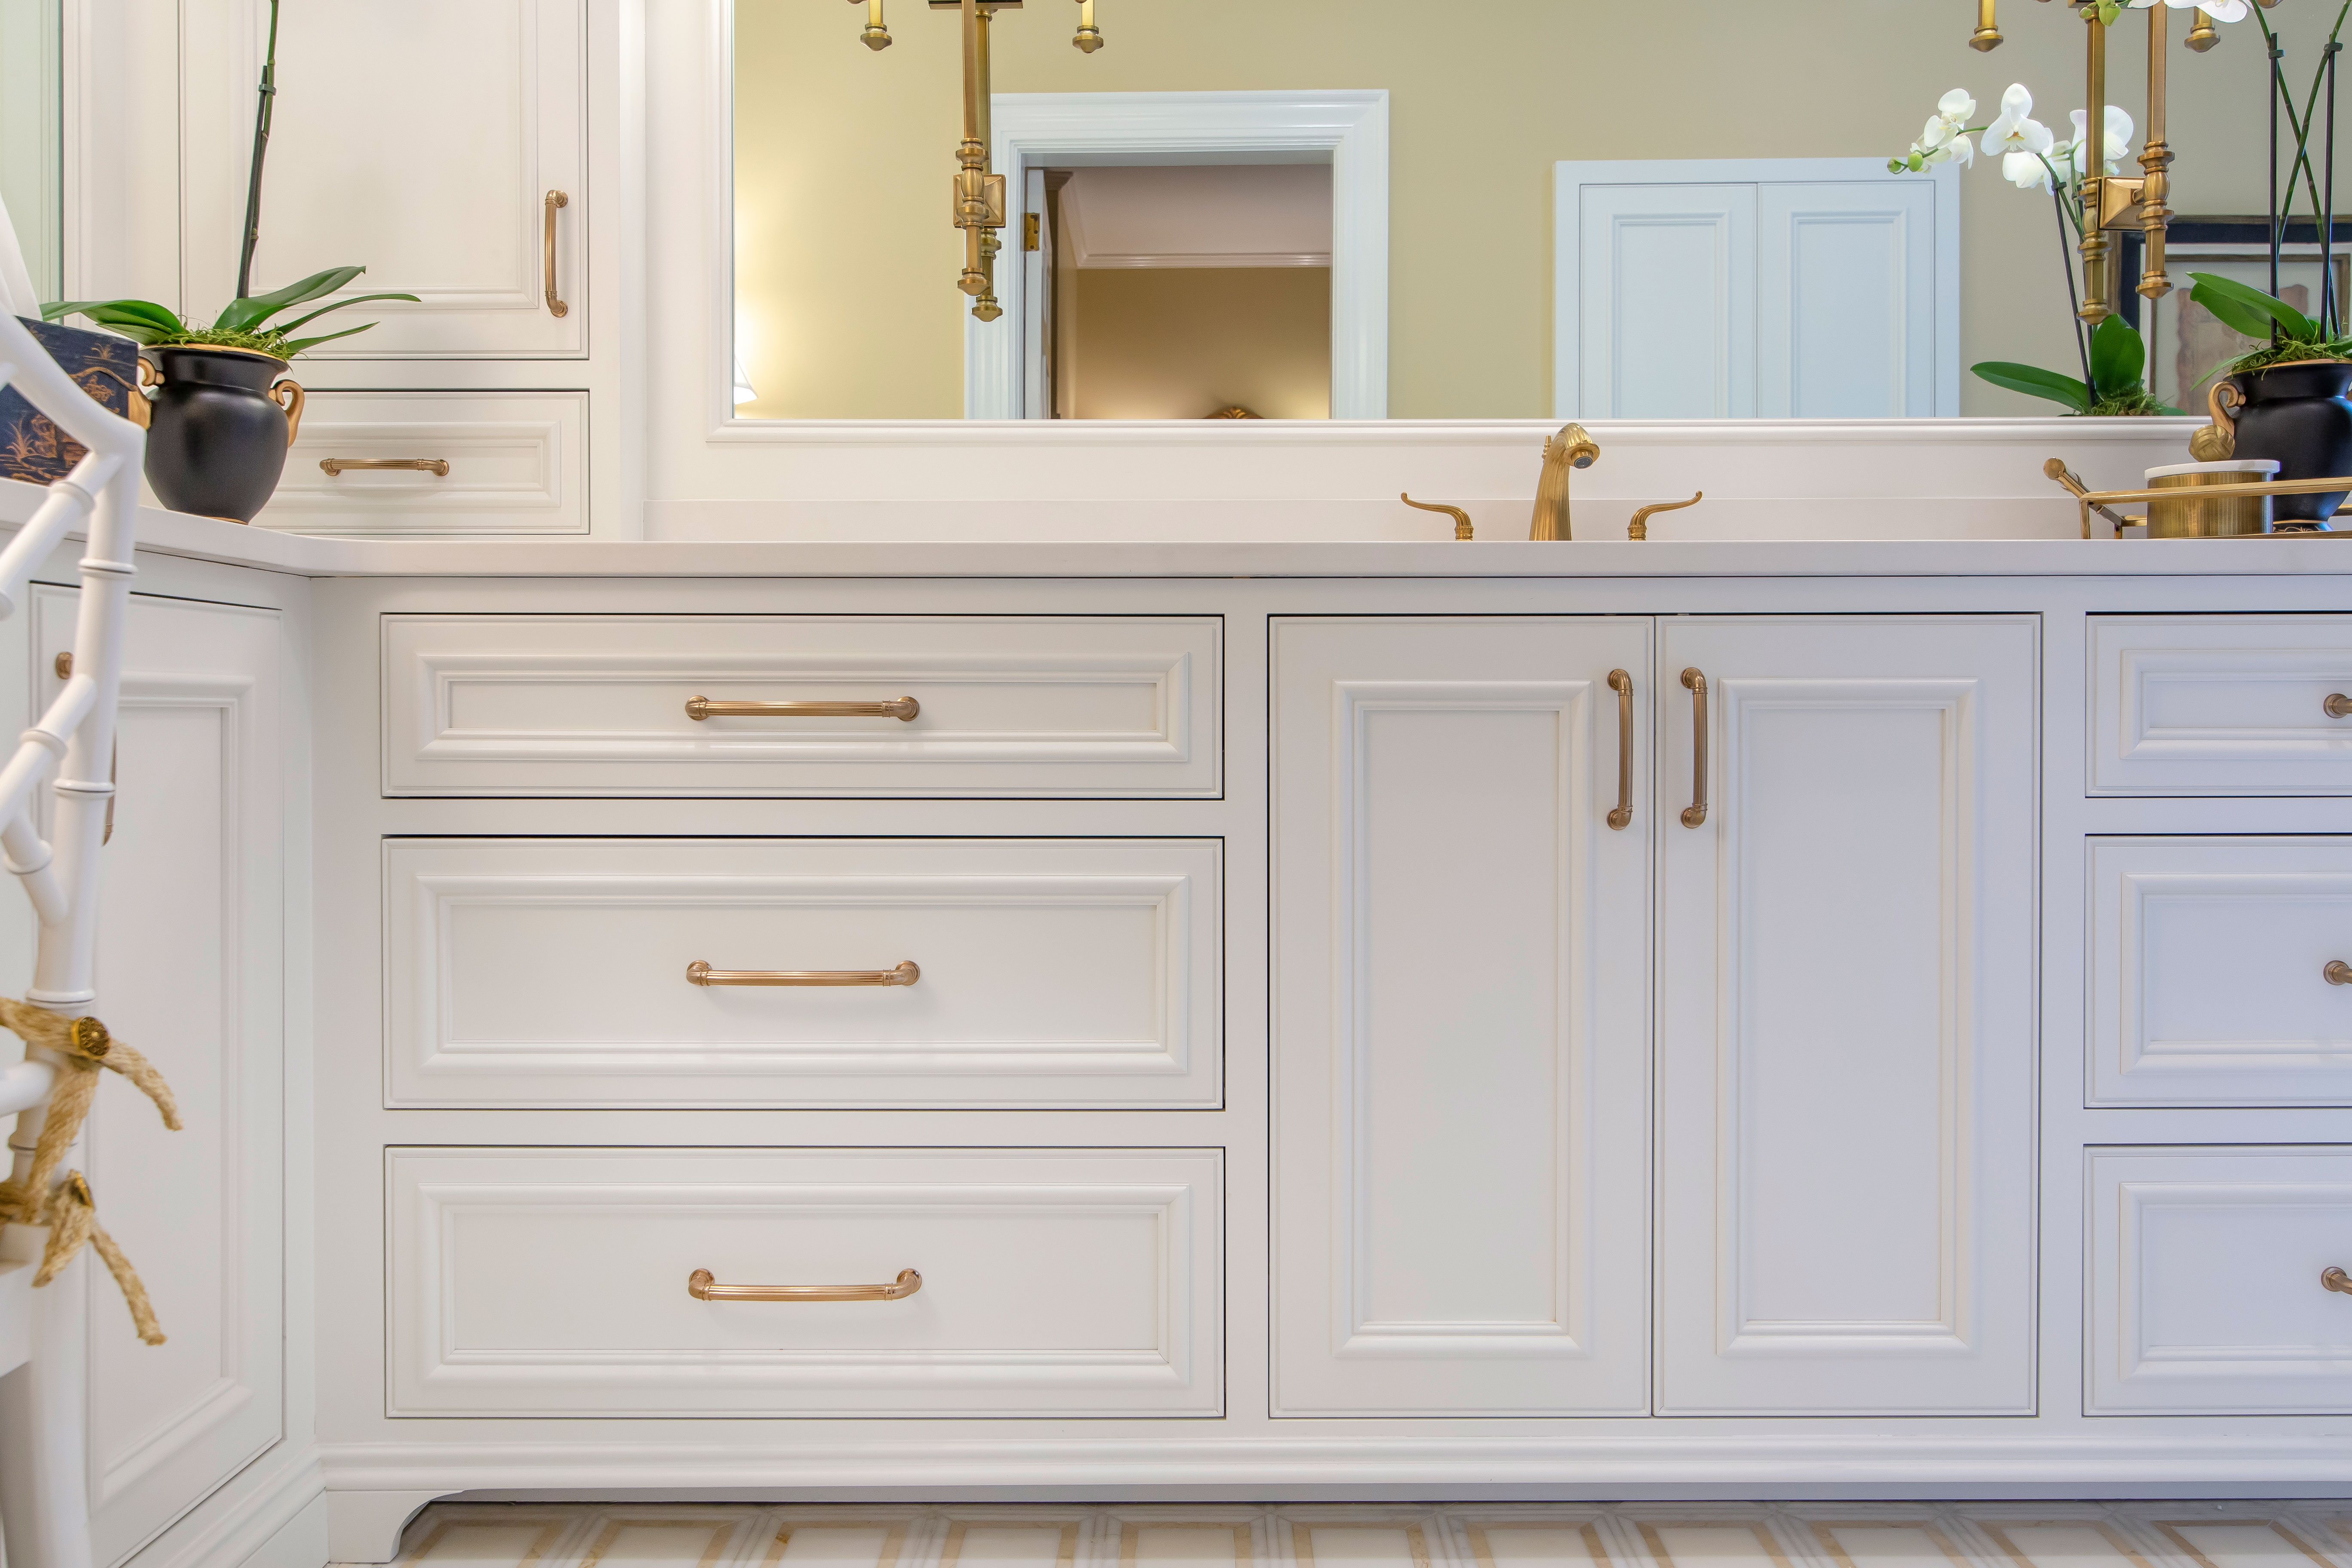 White Bathroom Cabinets Champagne Bronze Finish Hardware Soft Close Beaded Inset Inset Build Method Walker Woodworking Cabinets Greenbrook Design Center